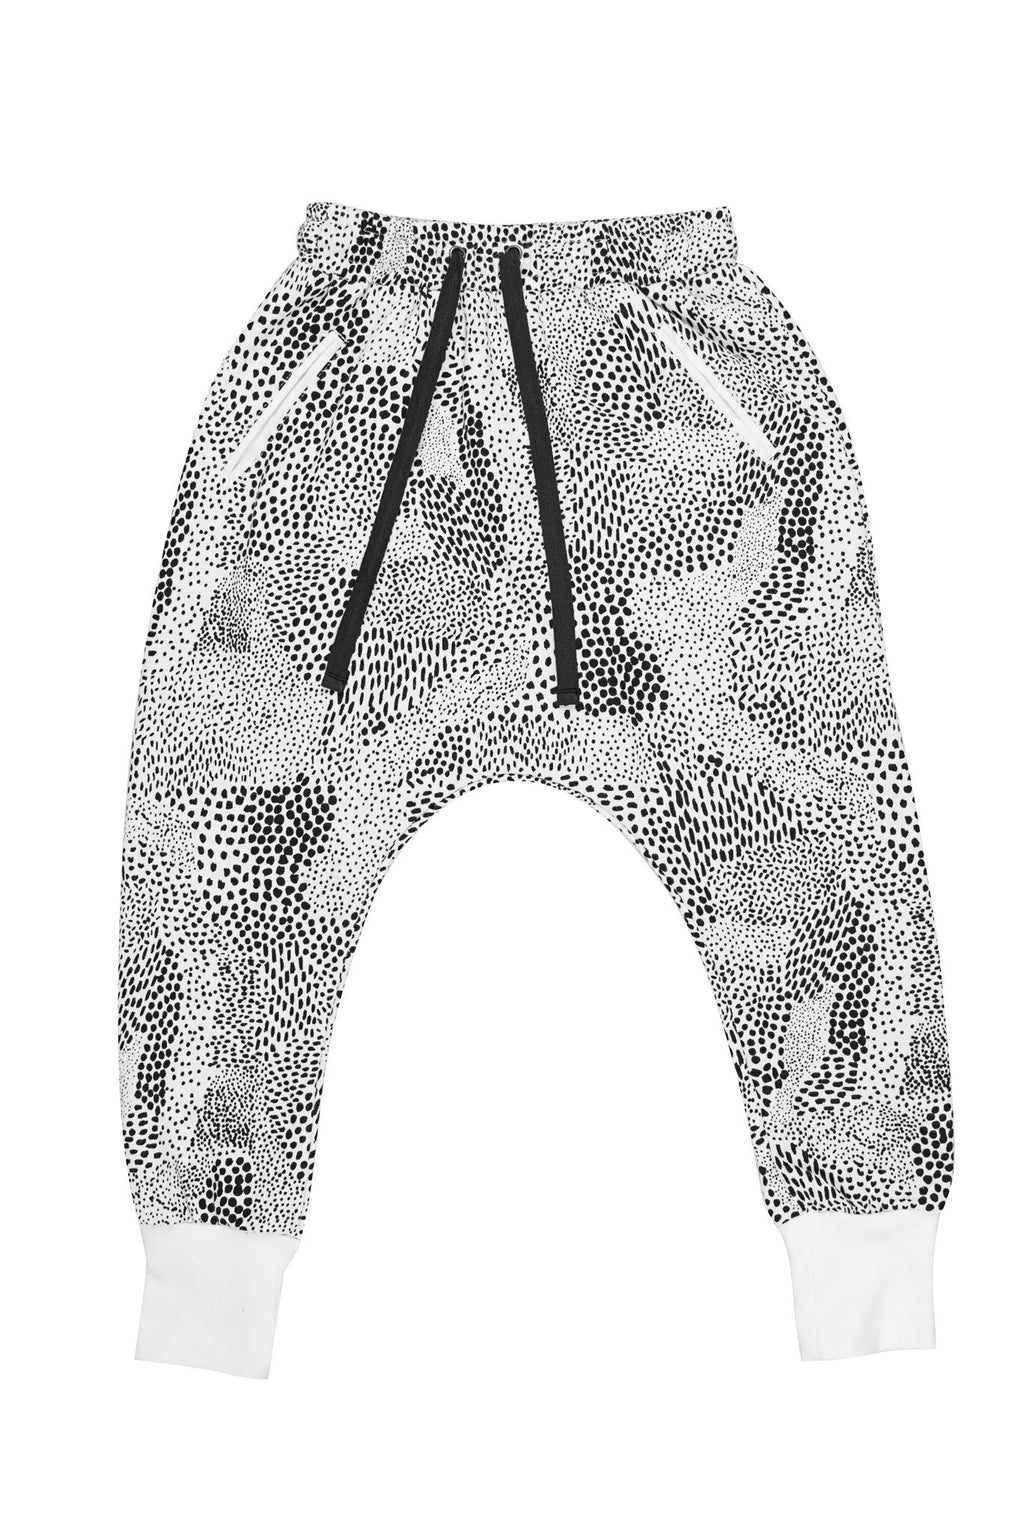 Abstract Low Crotch Trackie Black/White - Zuttion